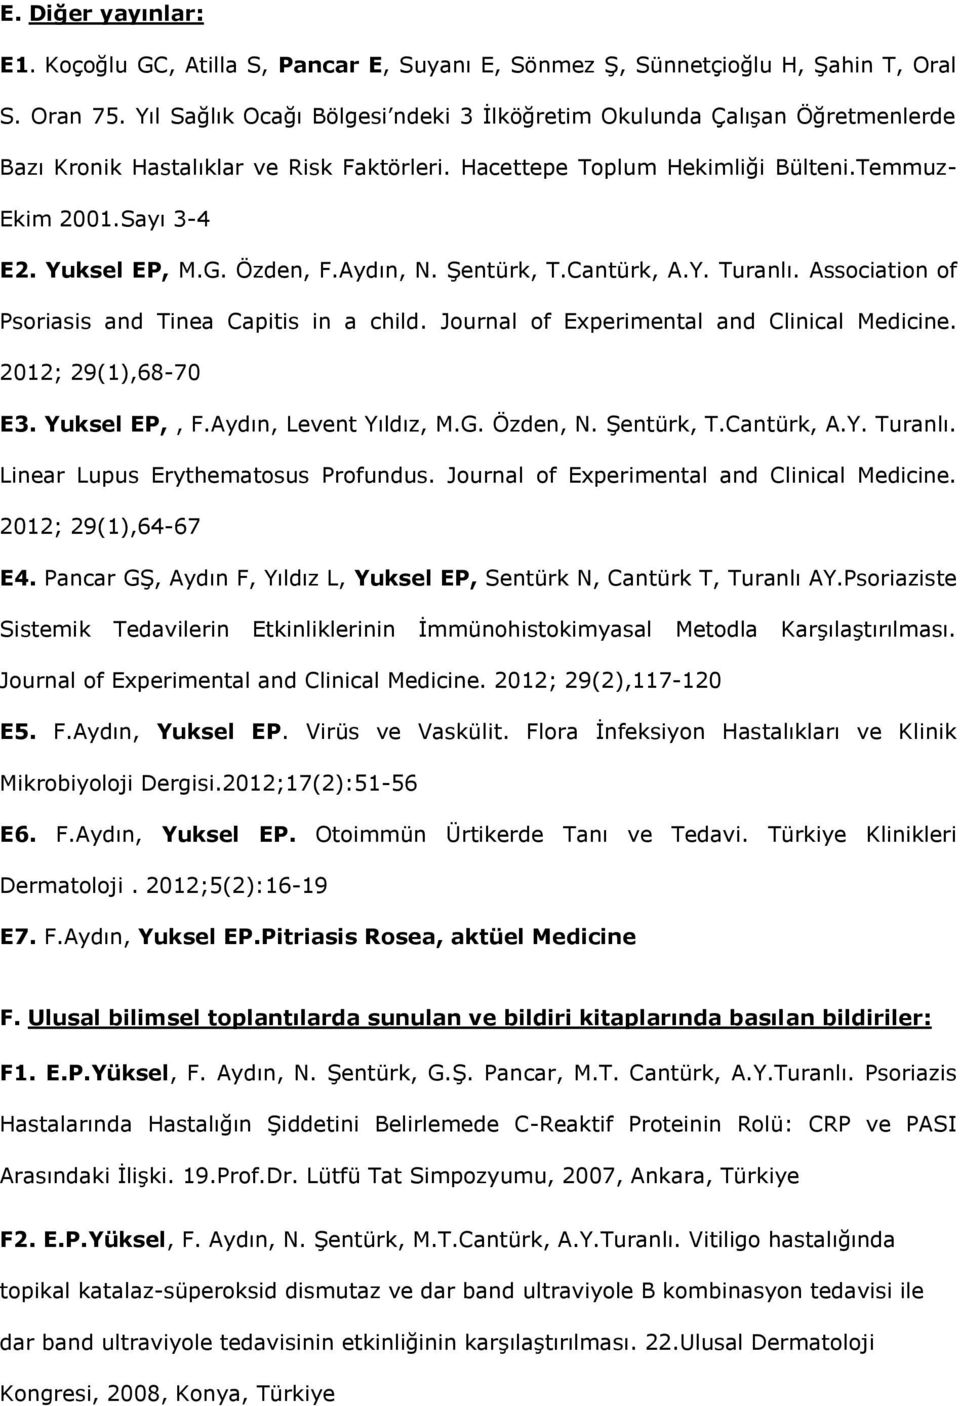 Özden, F.Aydın, N. Şentürk, T.Cantürk, A.Y. Turanlı. Association of Psoriasis and Tinea Capitis in a child. Journal of Experimental and Clinical Medicine. 2012; 29(1),68-70 E3. Yuksel EP,, F.